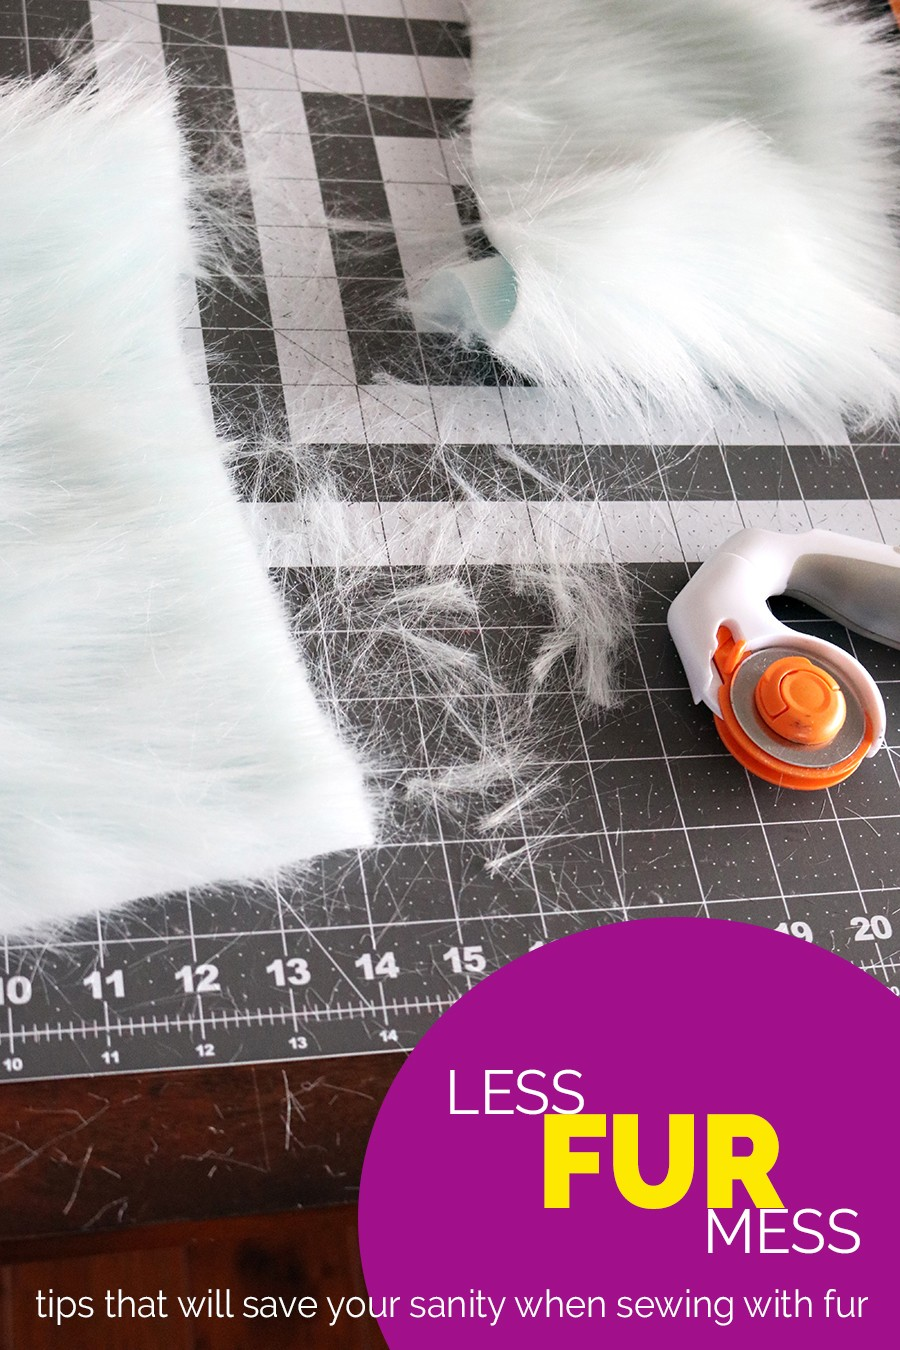 tips for sewing with fur that will help save your house (and your sanity!!!)